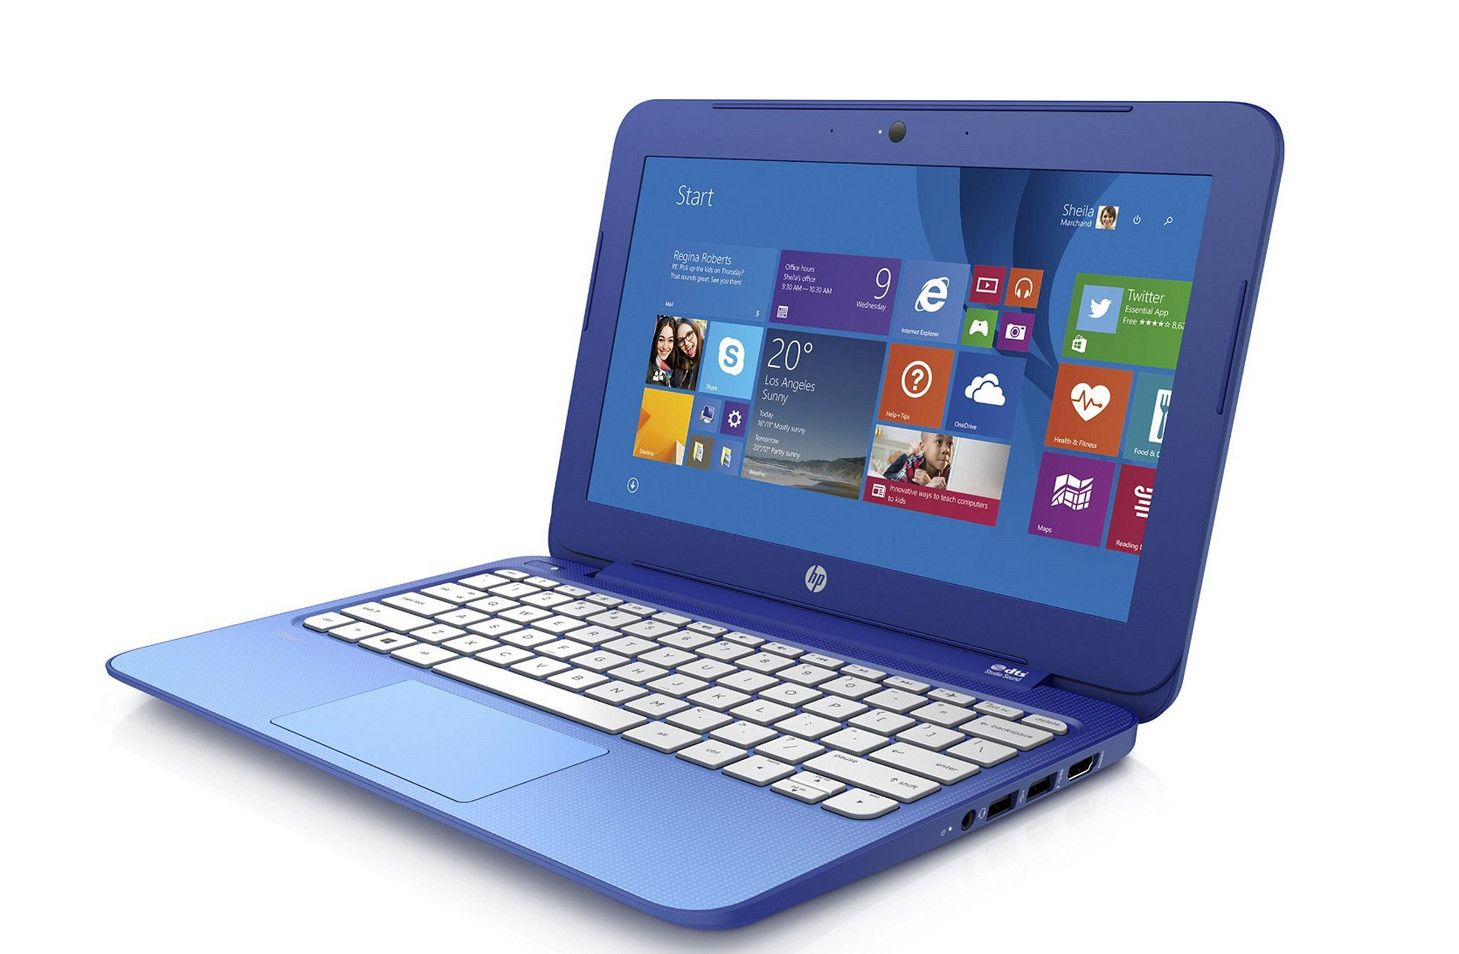 Hp S 200 Windows 8 1 Stream Laptop Now On Comes With 25 Credit